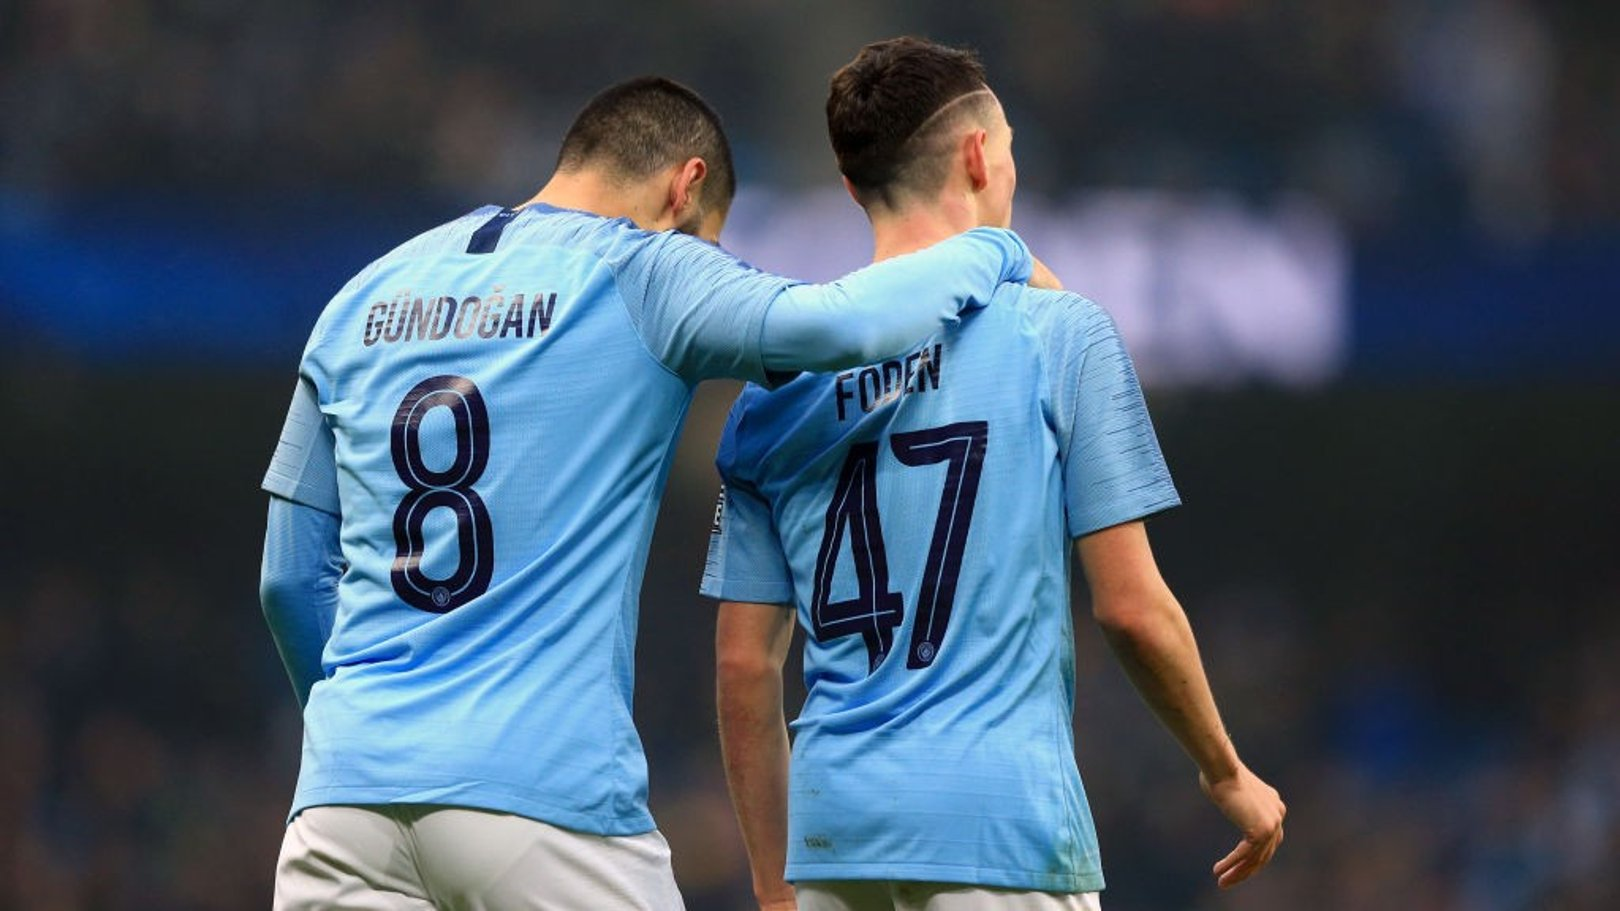 World Mental Health Day: Gundogan and Foden discuss importance of talking